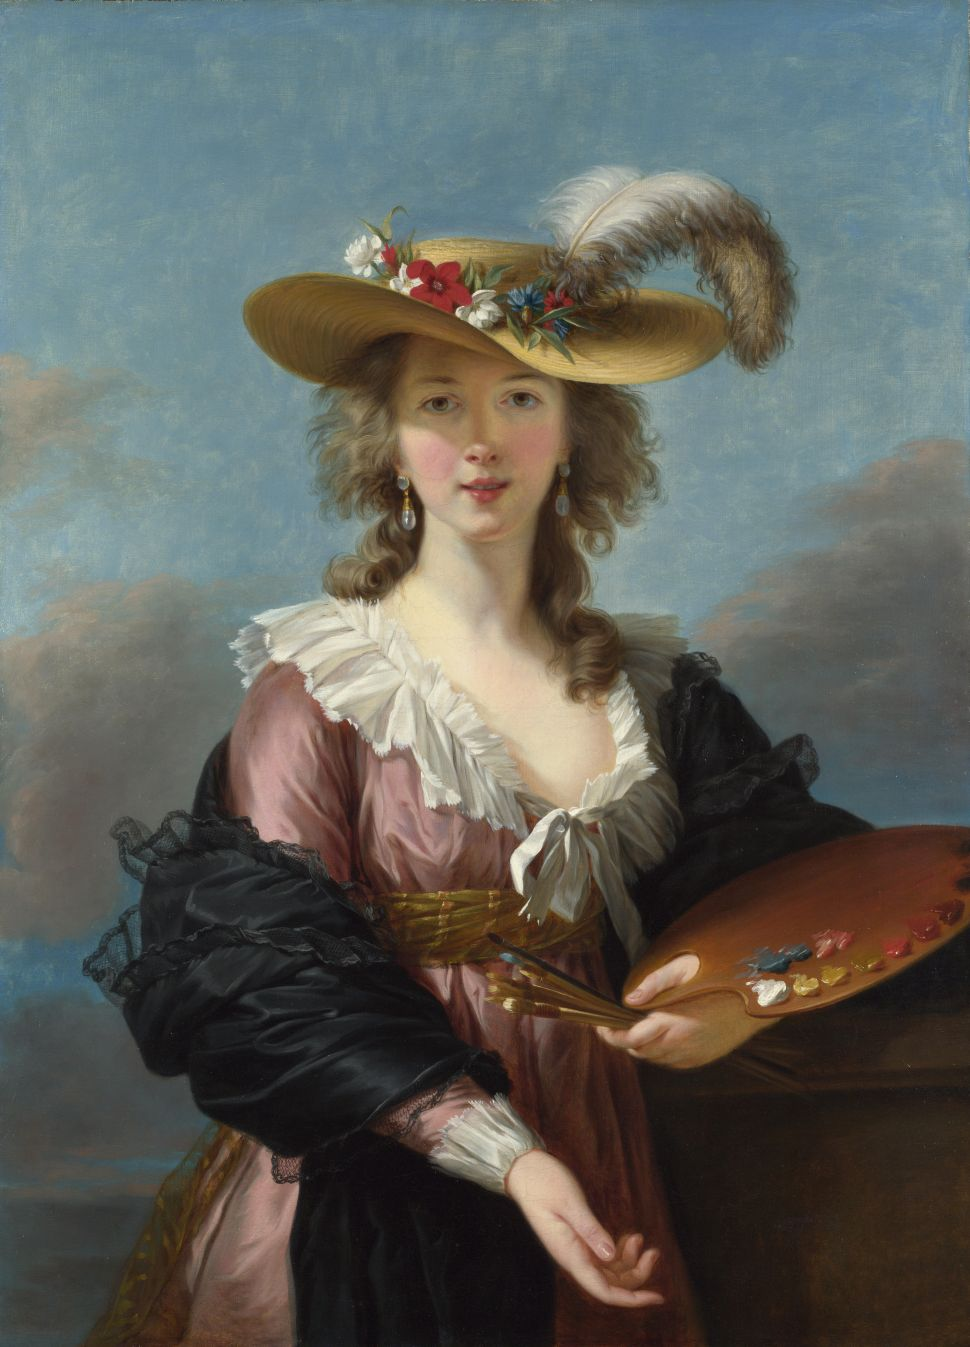 Museums' Social Media Campaign Sheds Light on Overlooked Women in Art History